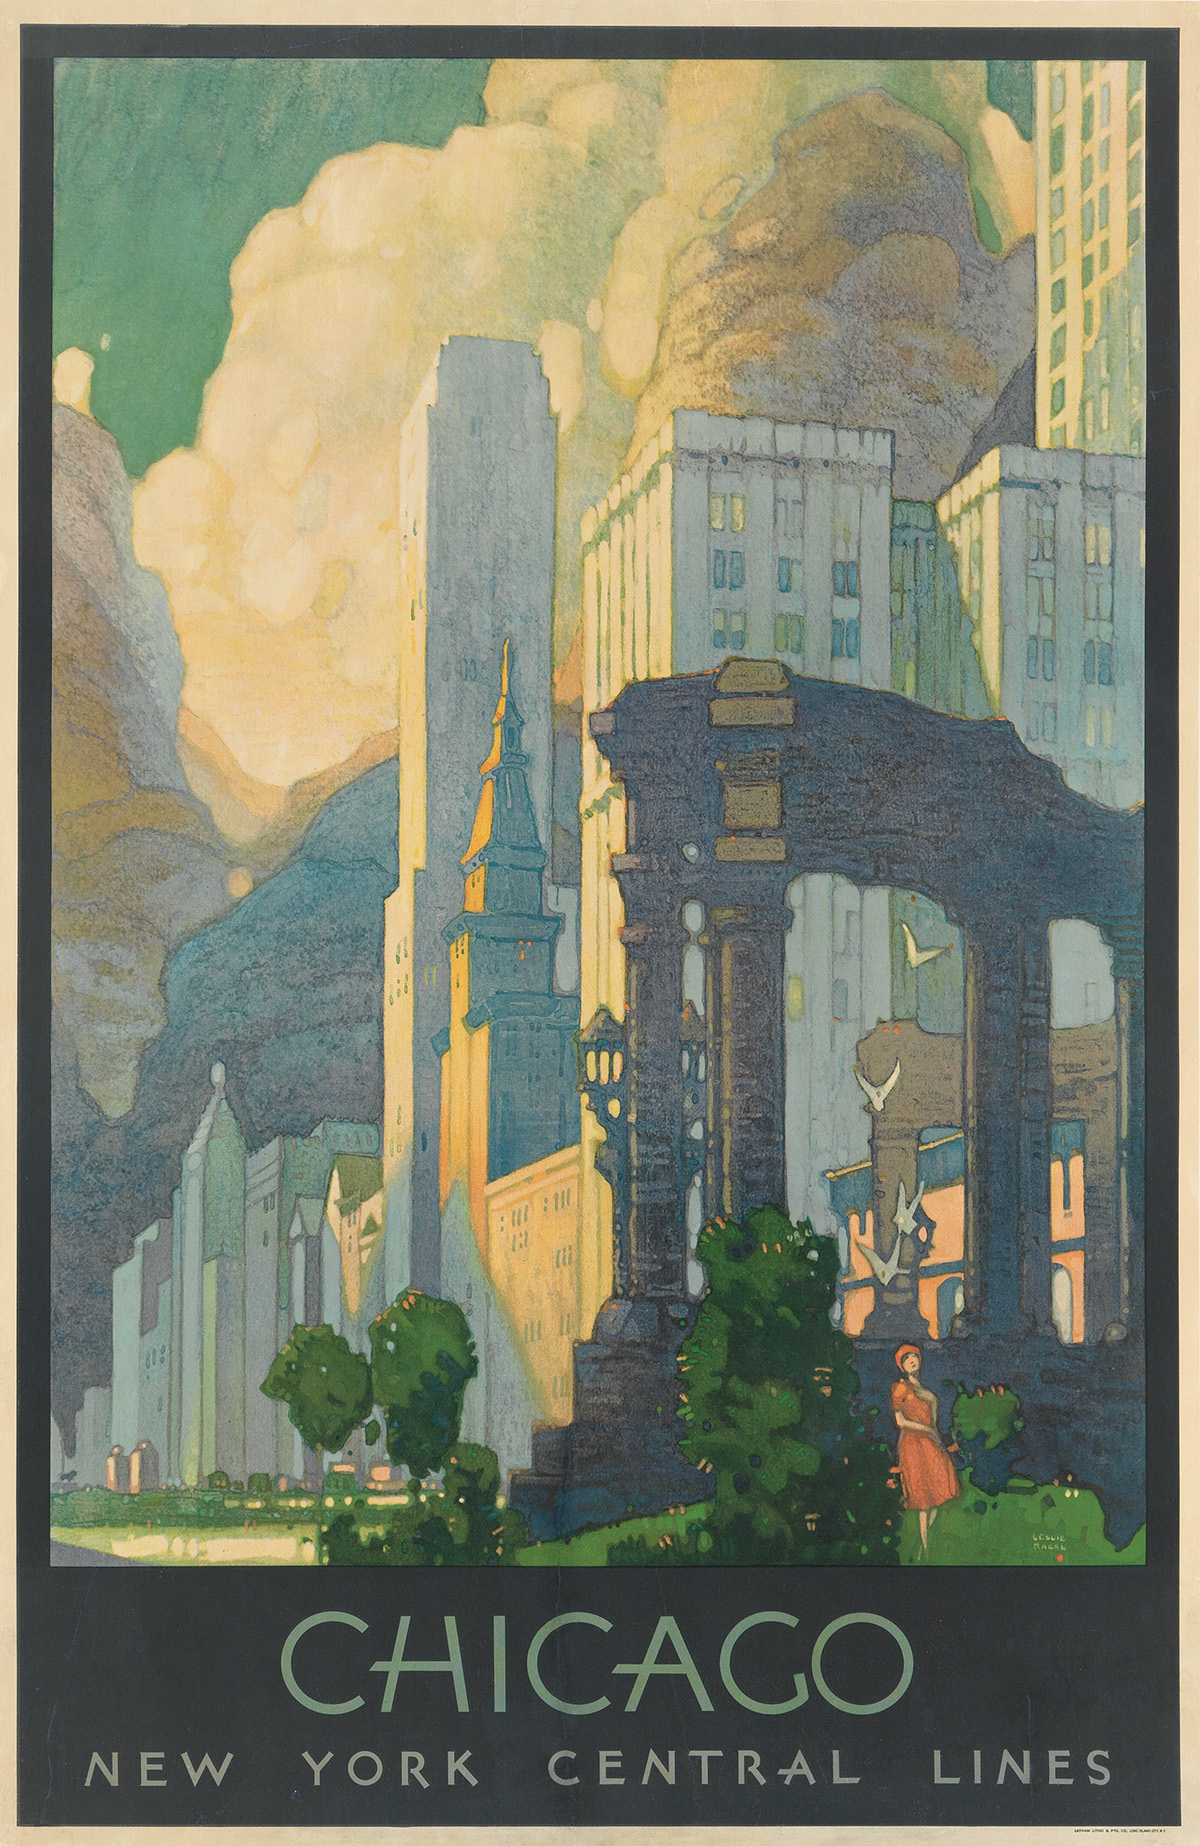 LESLIE RAGAN (1897-1972). CHICAGO / NEW YORK CENTRAL LINES. 1929. 40x26 inches, 101x66 cm. Latham Litho & Ptg. Co., Long Island City.